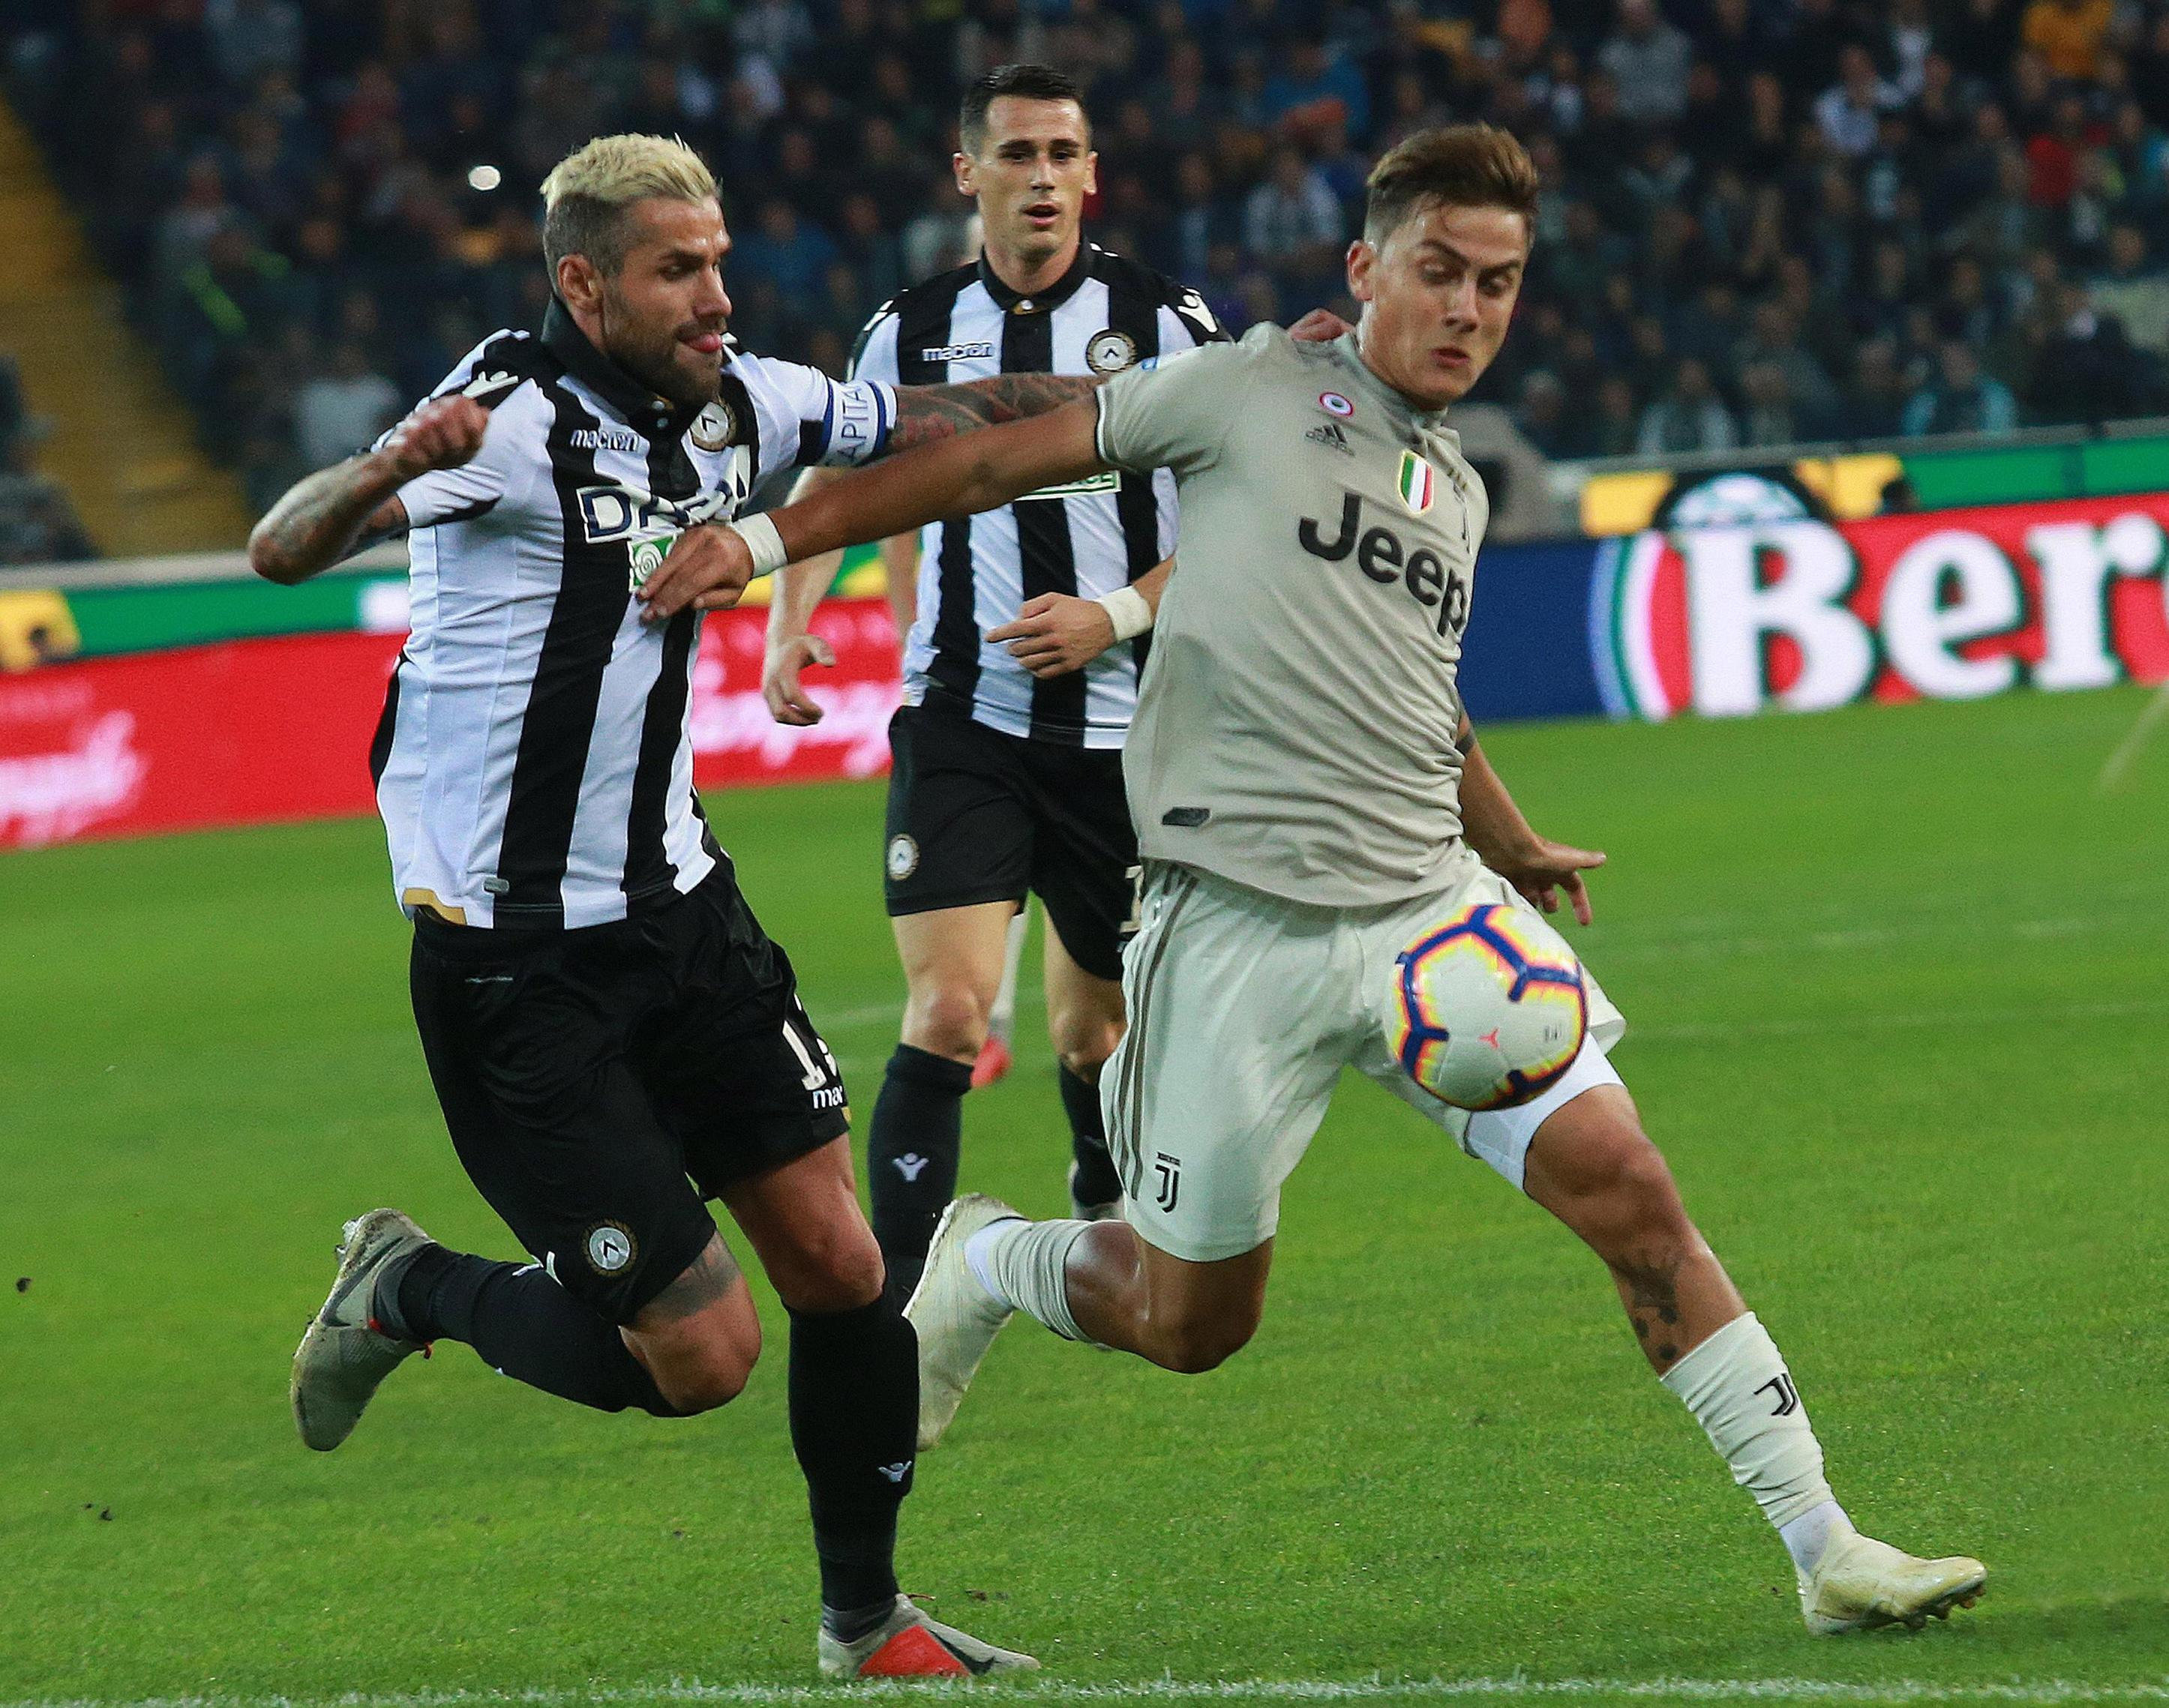 Paulo Dybala is a brilliant talent but might not be the kind of player Chelsea need as the focal point of their attack